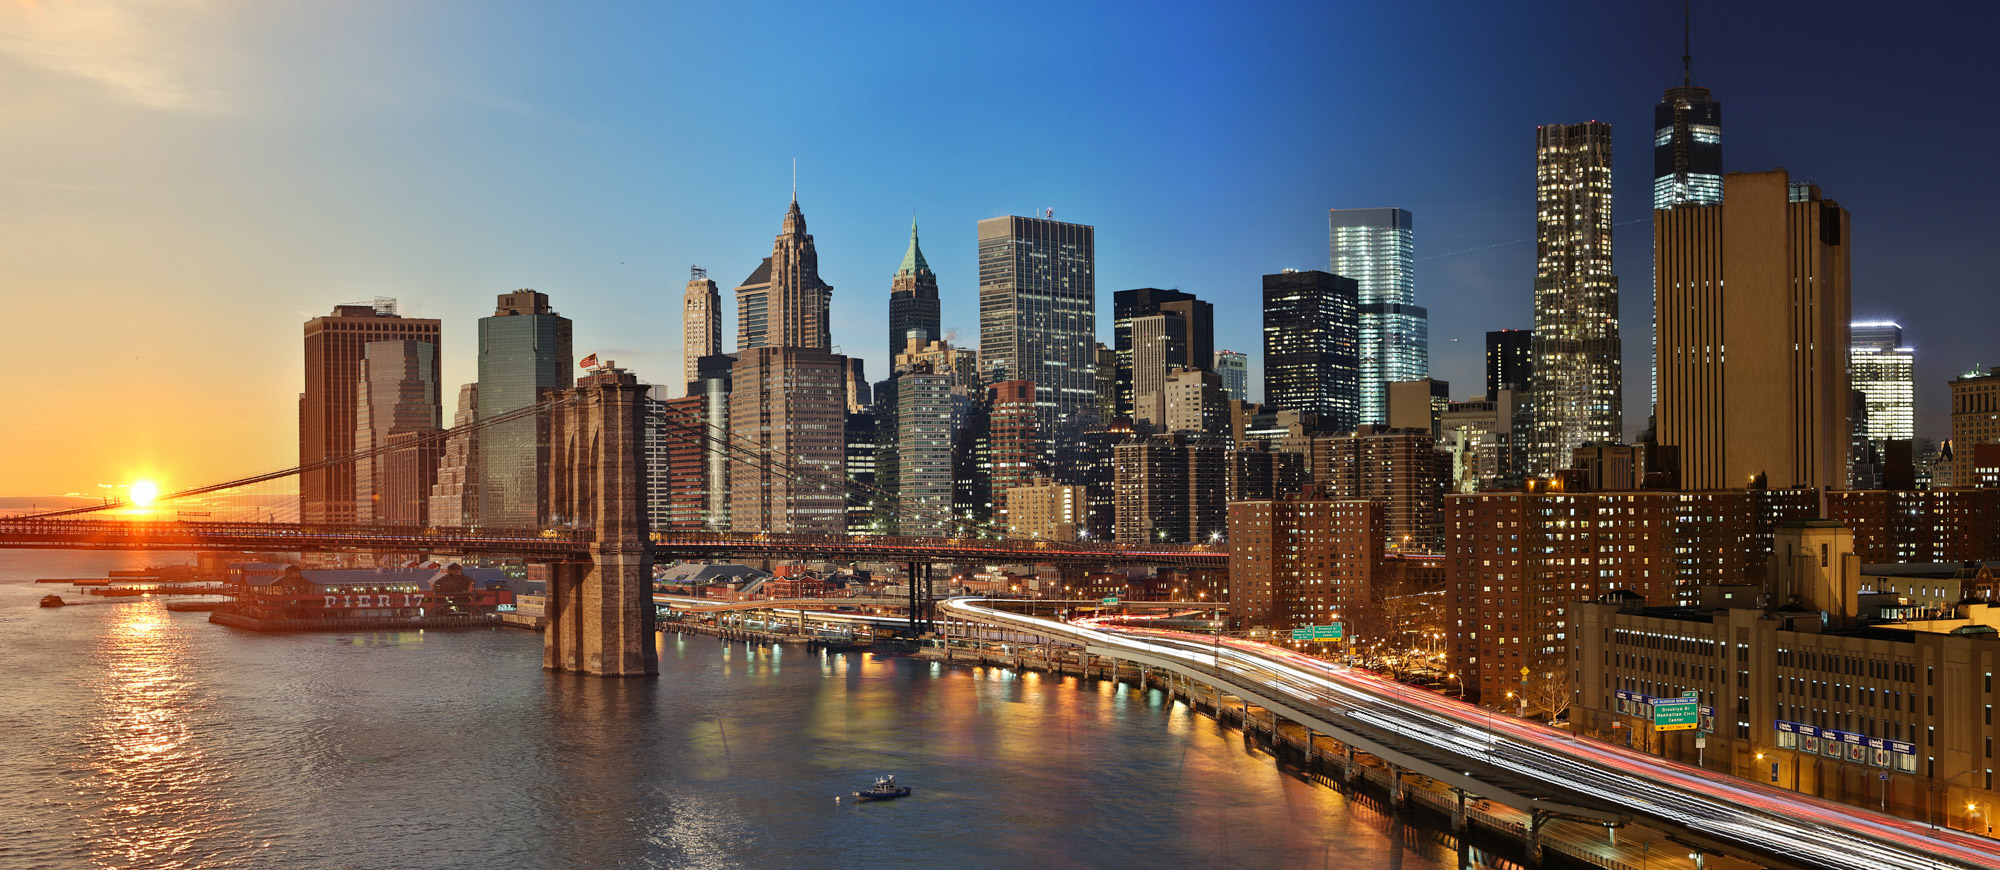 14-New_York_City_Time_Lapse_Day_To_Night_Manhattan_4D